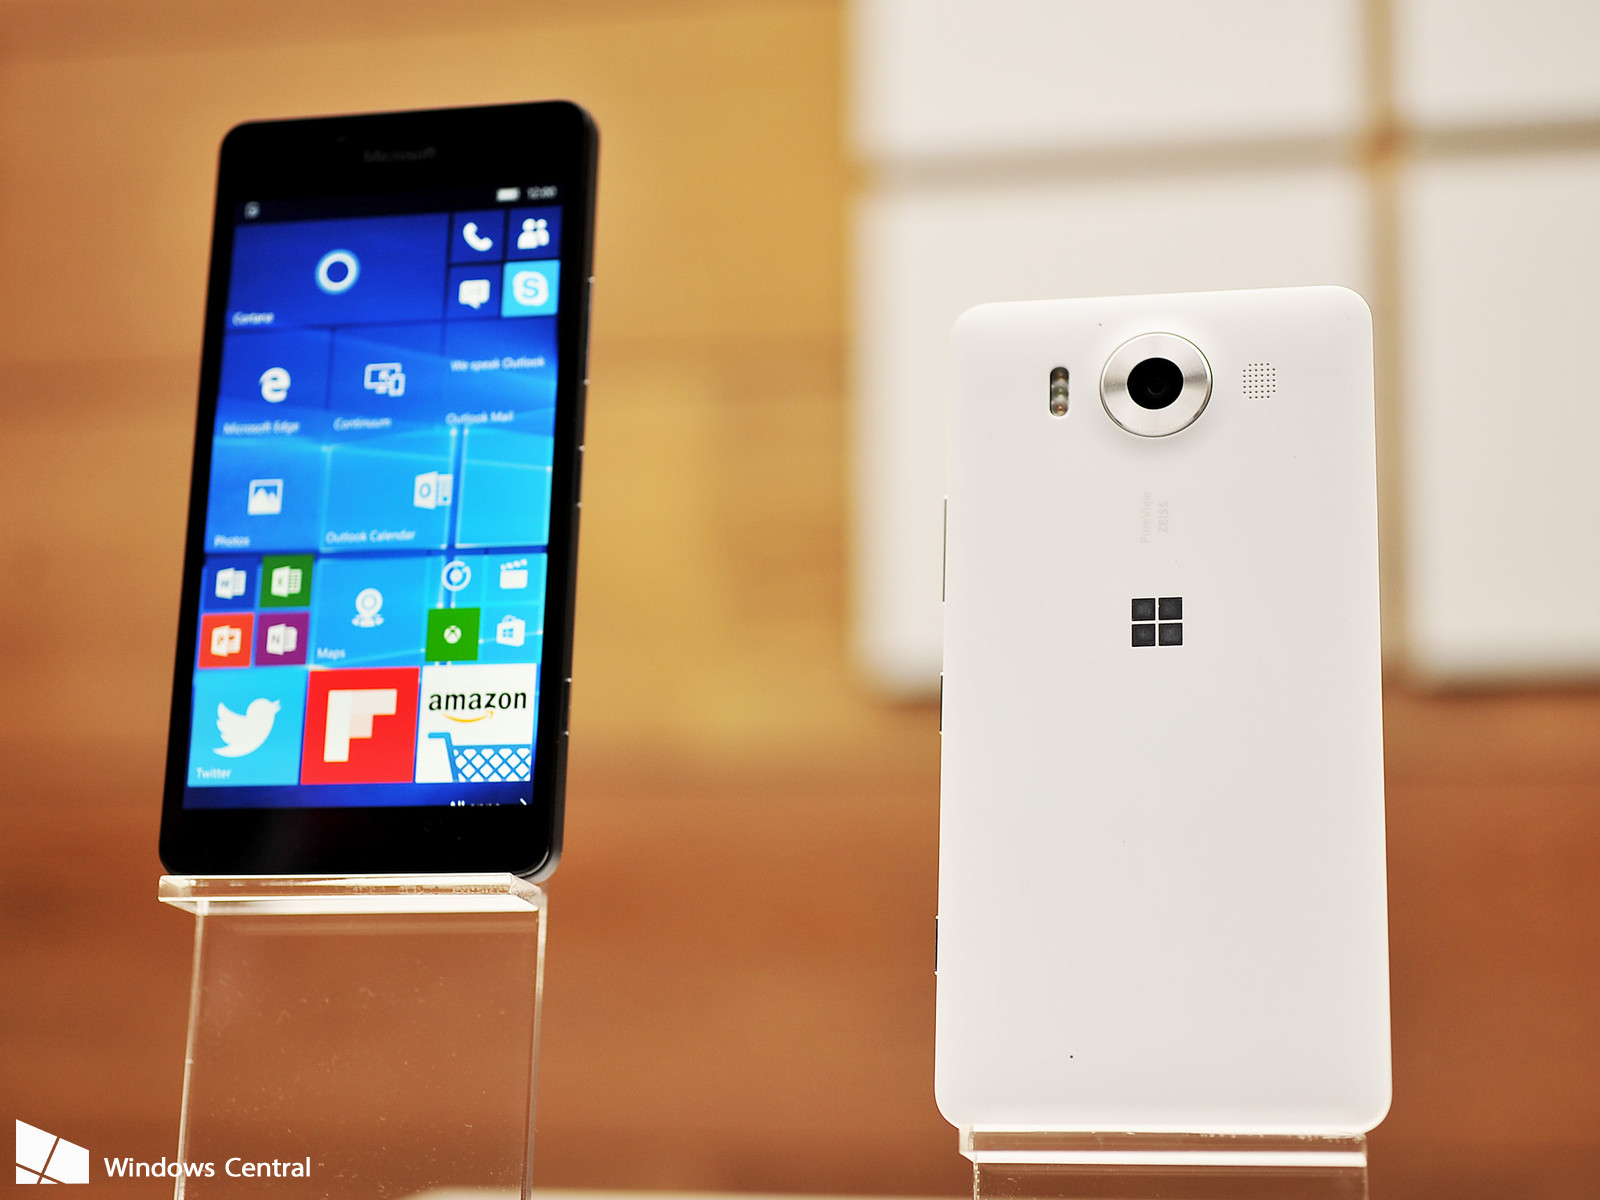 Microsoft Lumia 950 can now be purchased from AT&T for just $298.98